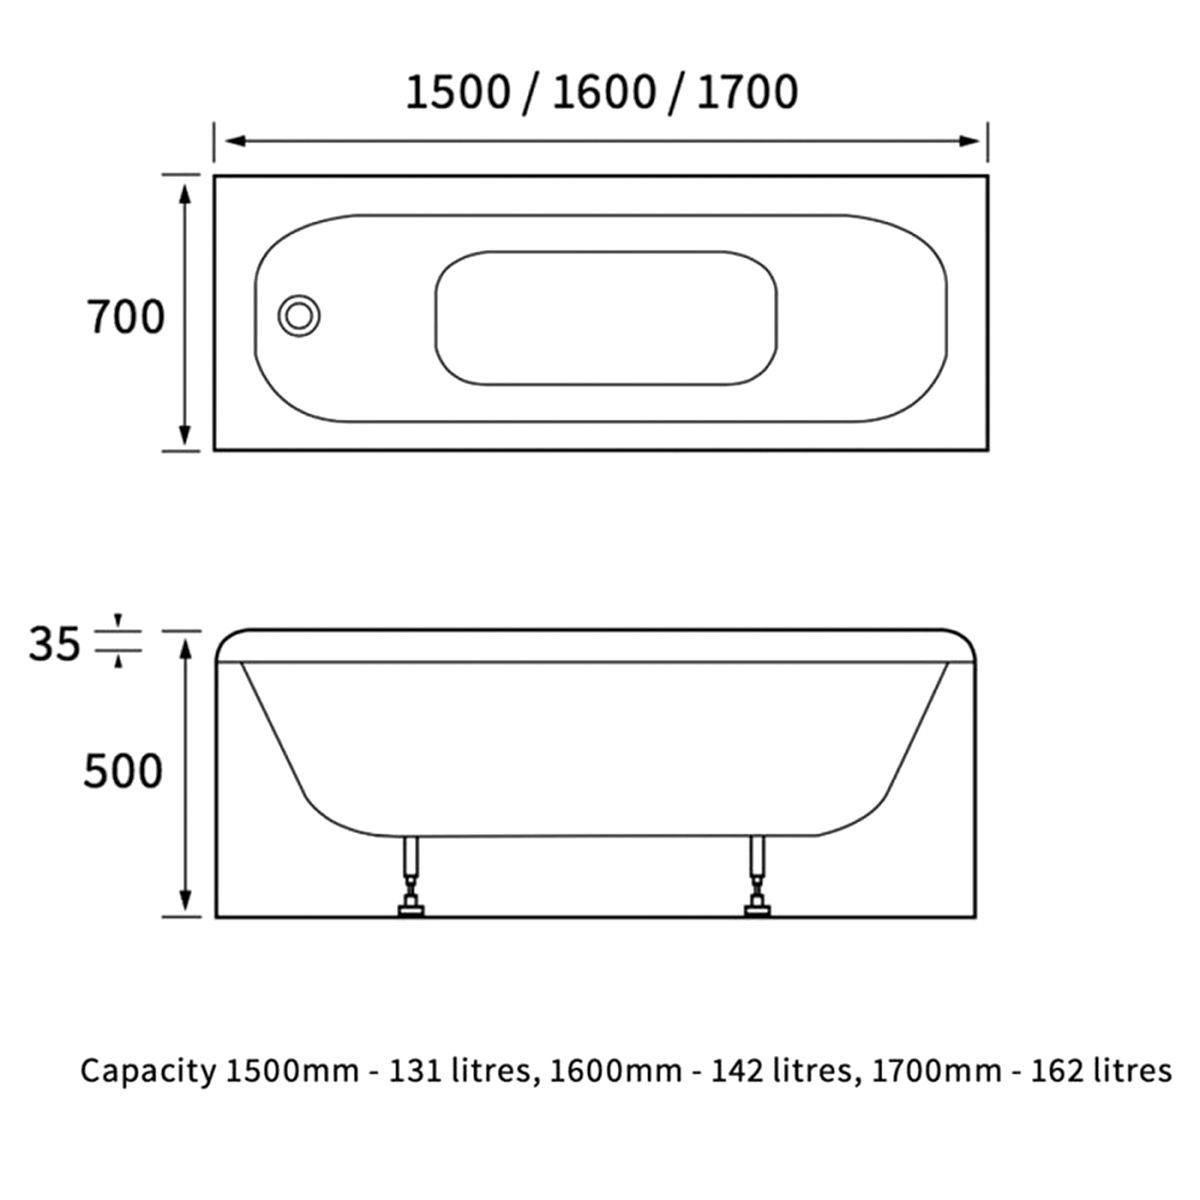 Bathrooms To Love Rectangular 2 Tap Hole Single Ended Steel Bath 1700mm x 700mm Line Drawing